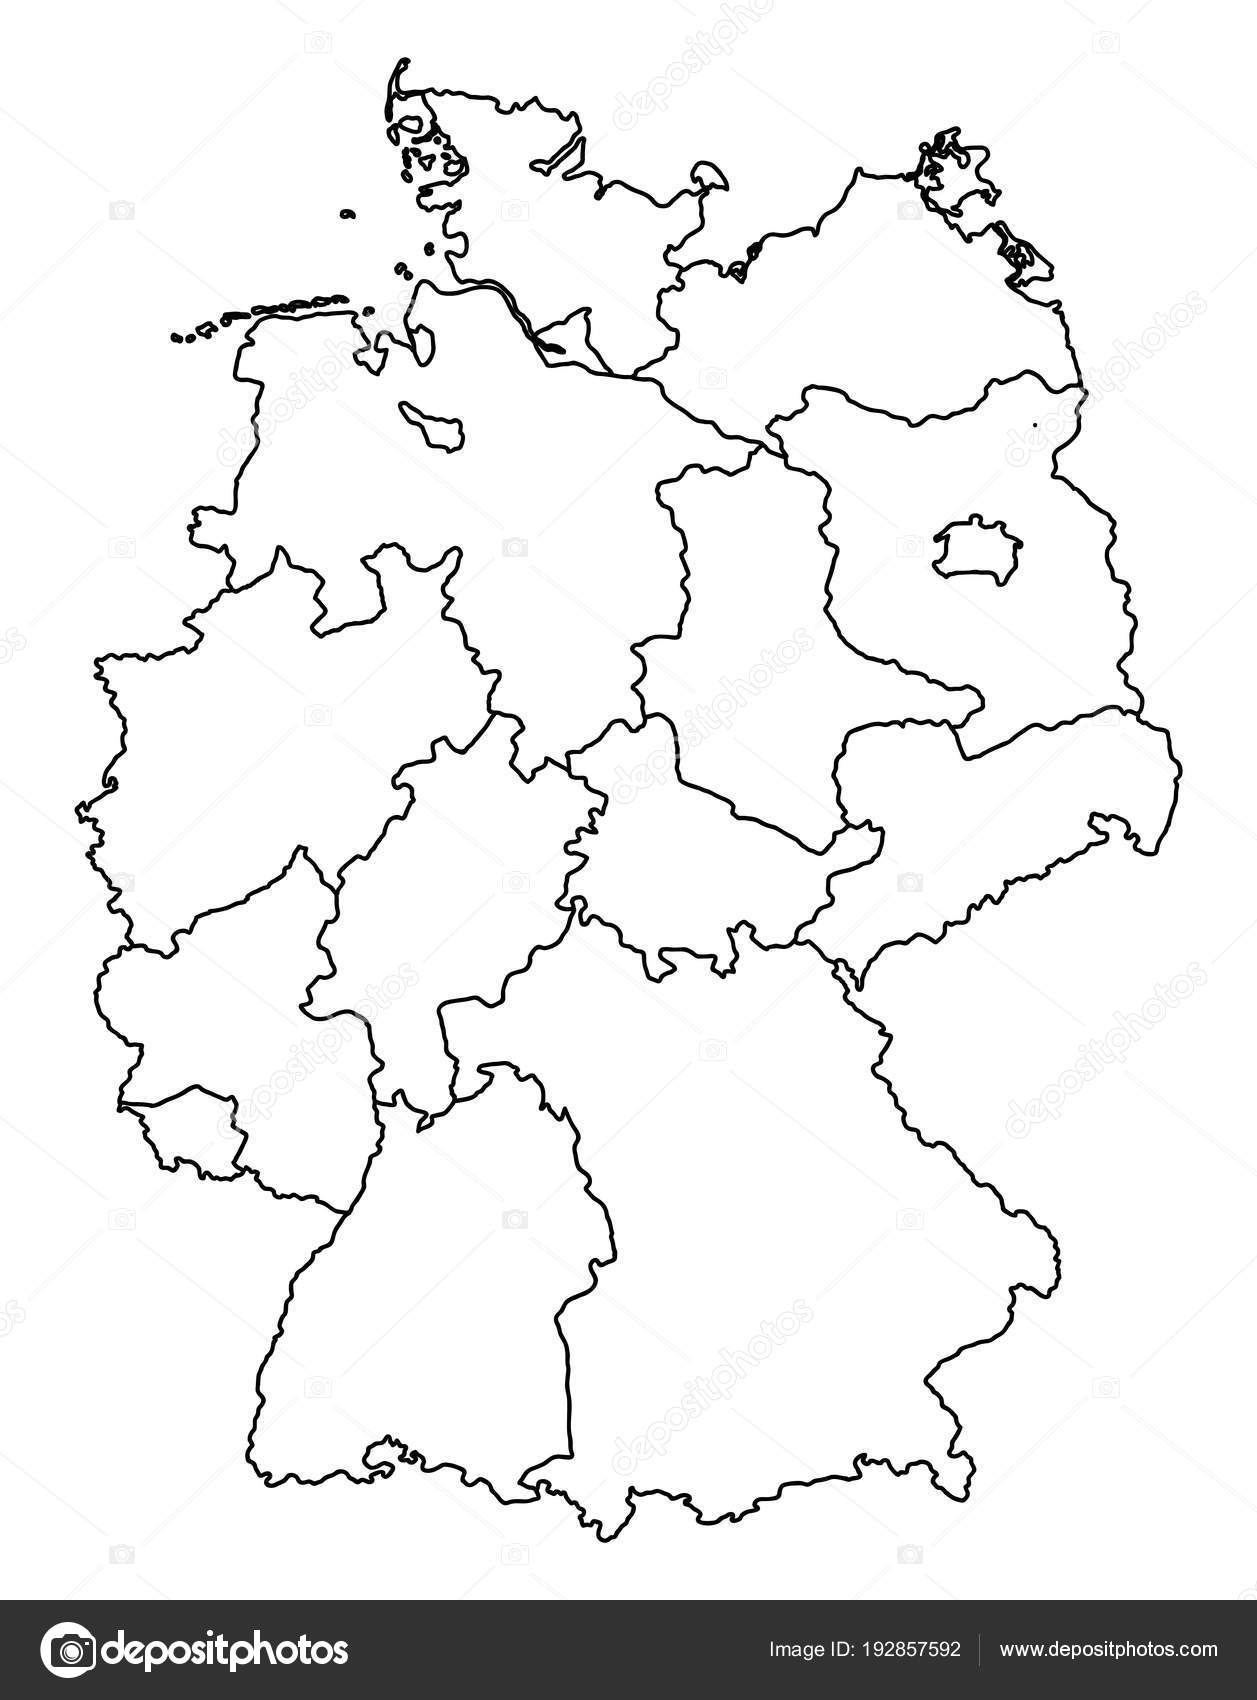 Outline Map Of Germany.Outline Map Germany Stock Vector C Blacklava36 192857592